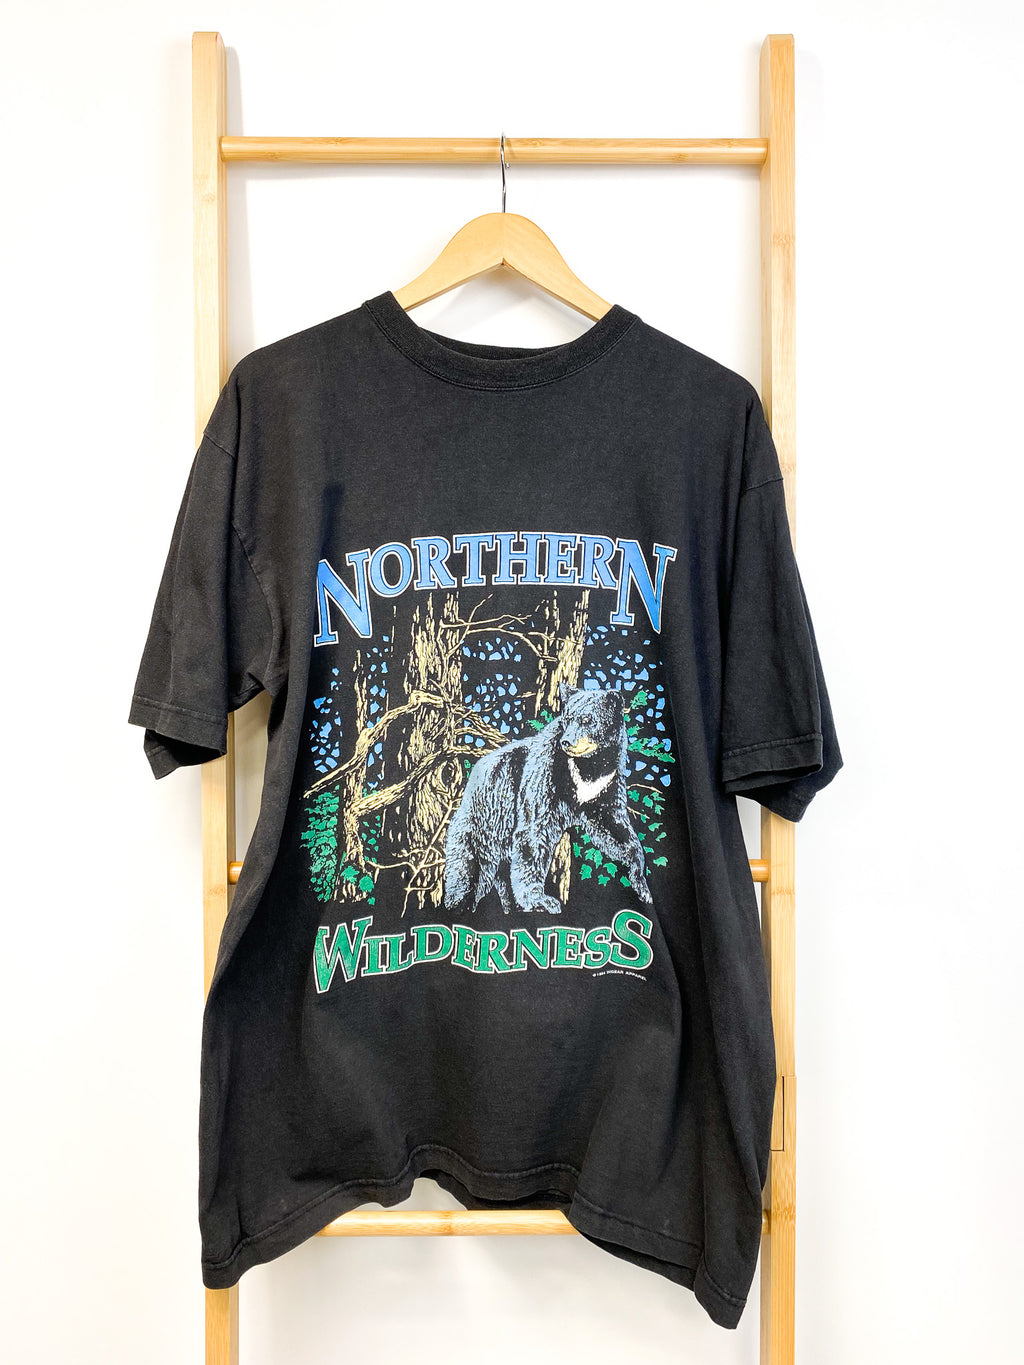 Vintage Northern Wilderness Tee (L)